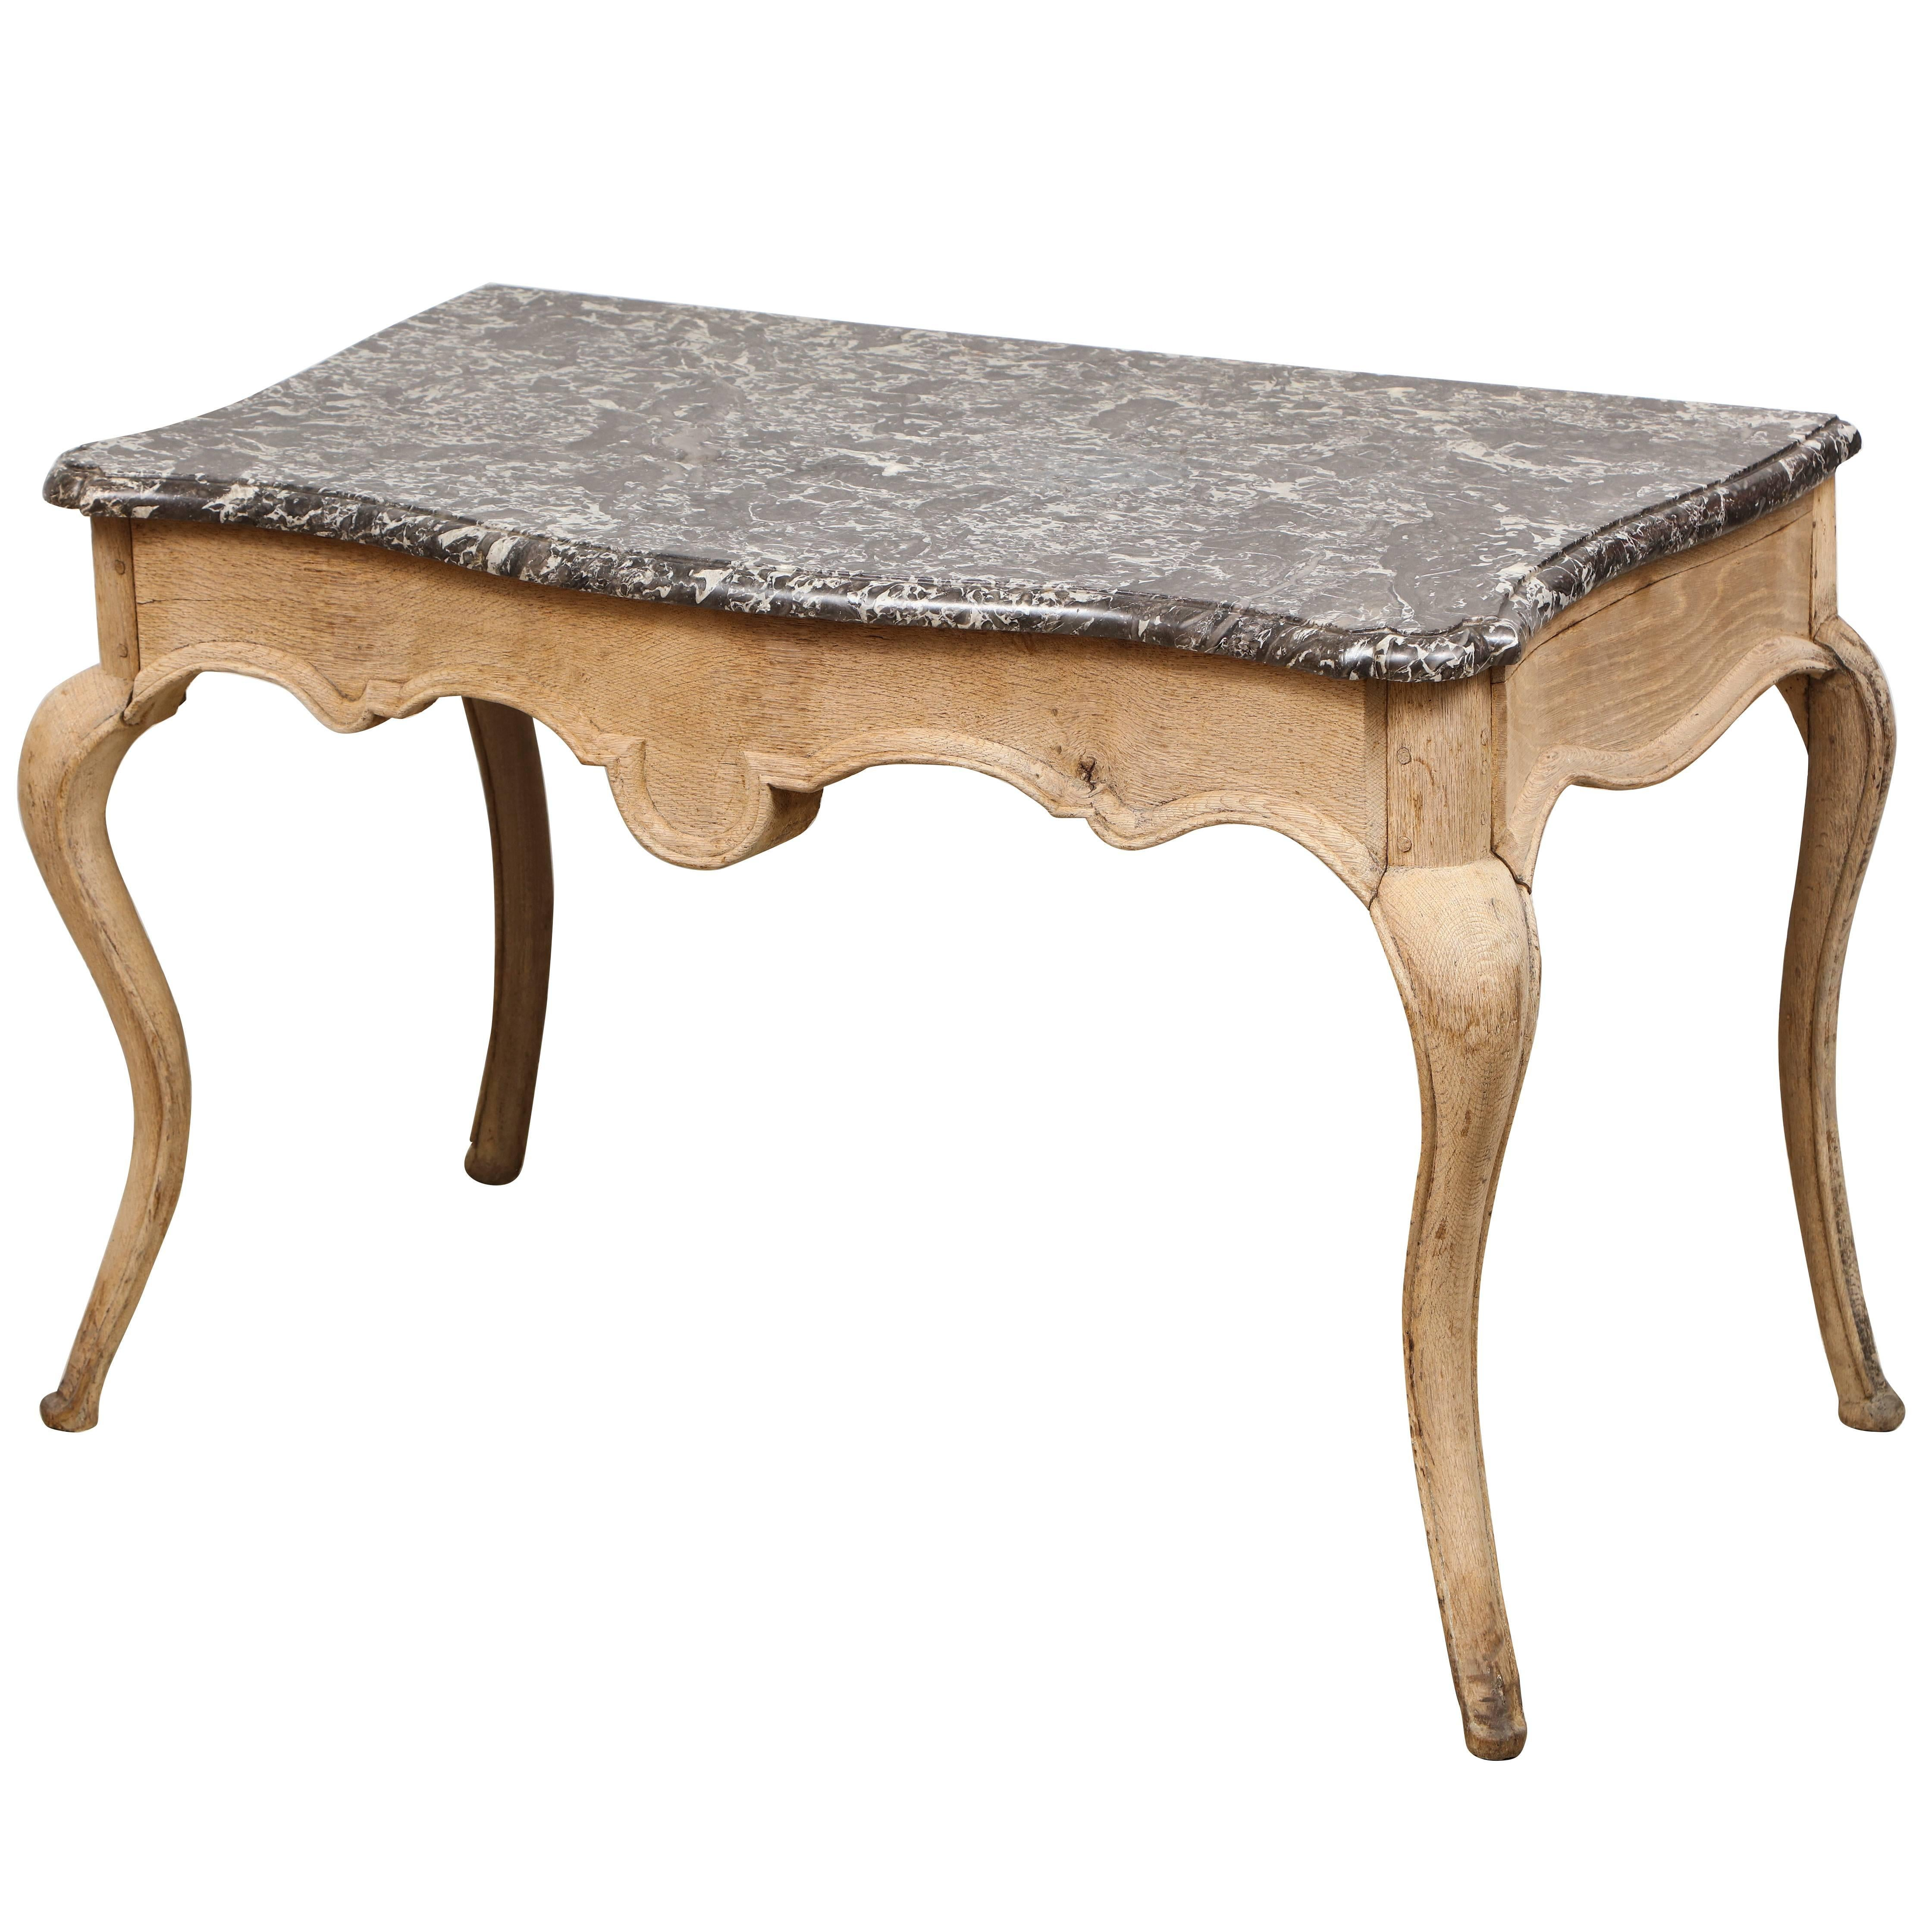 Whimsical Louis XV Style Marble Top Painted Table On Sabre Legs